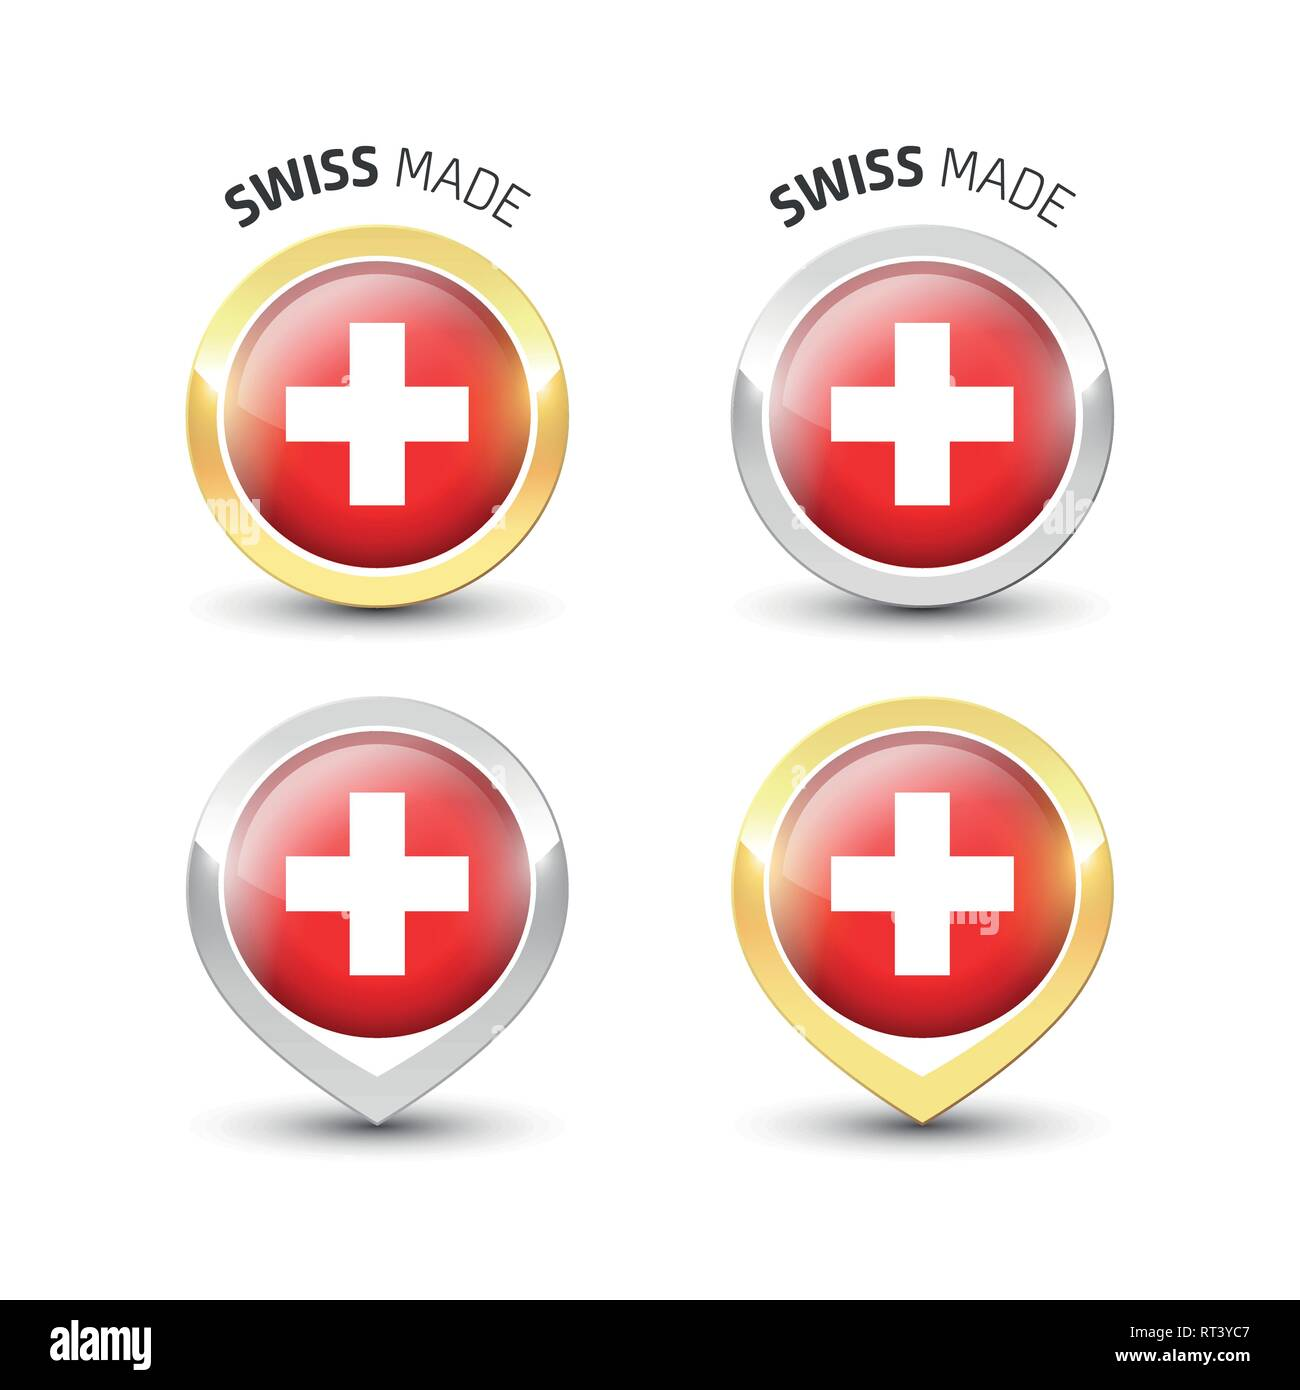 Swiss made - Guarantee label with the flag of Switzerland inside round gold and silver icons. - Stock Image